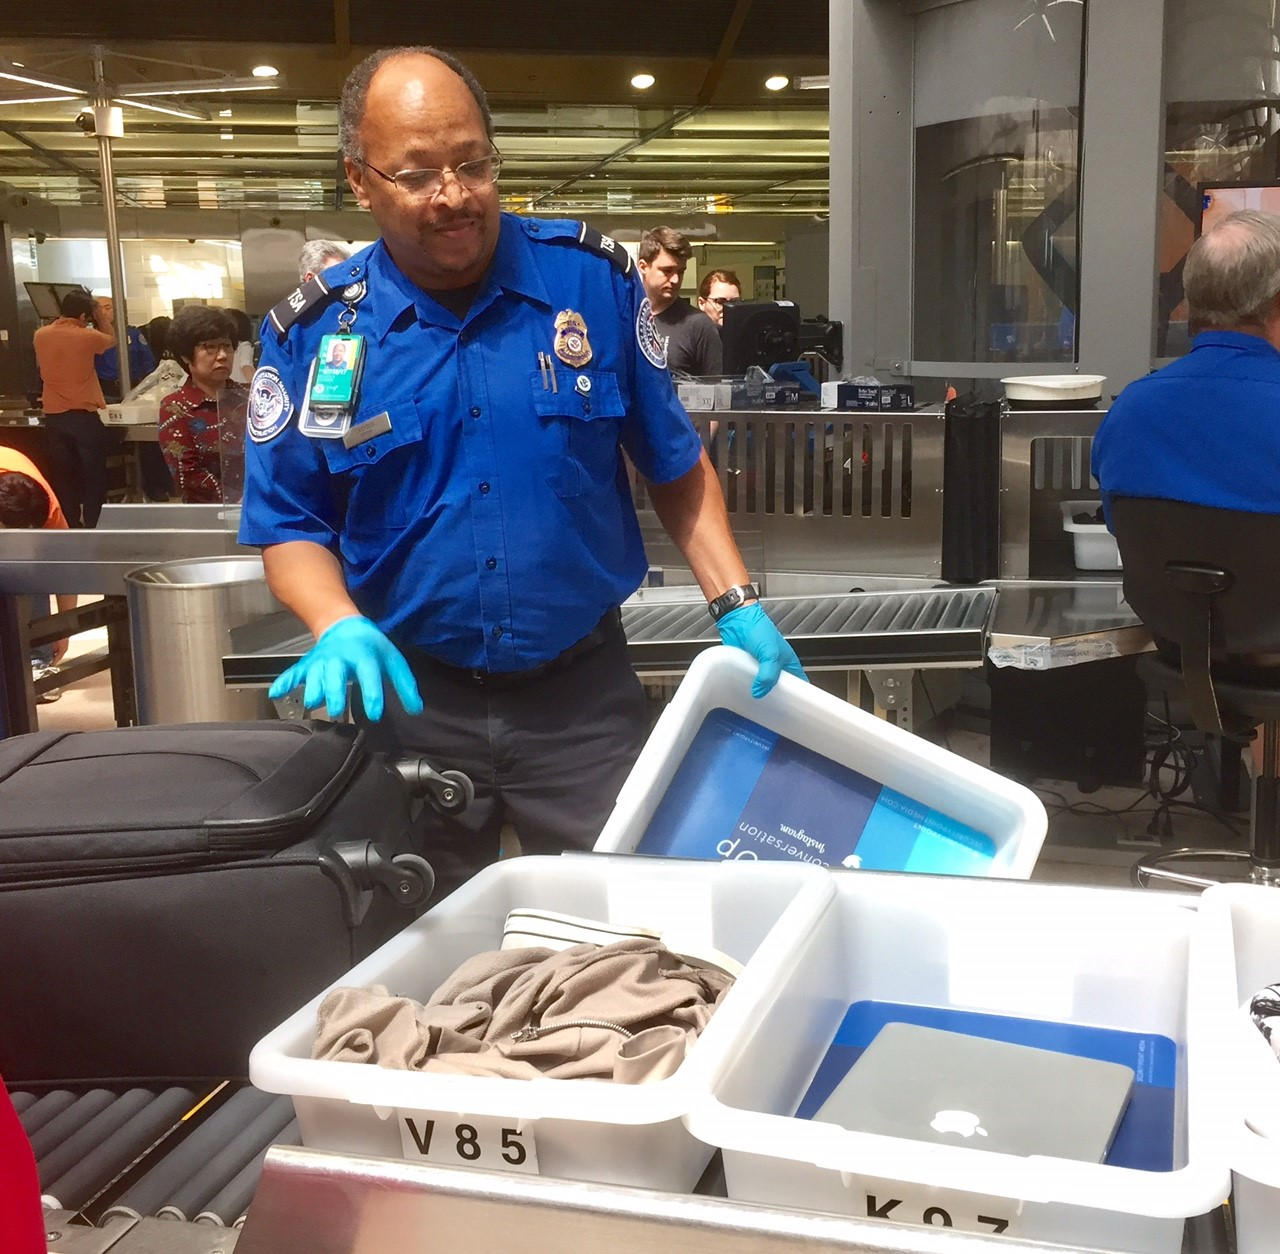 Tsa Shares Top 5 Tips To Get You Through End Of Year Holiday Travel